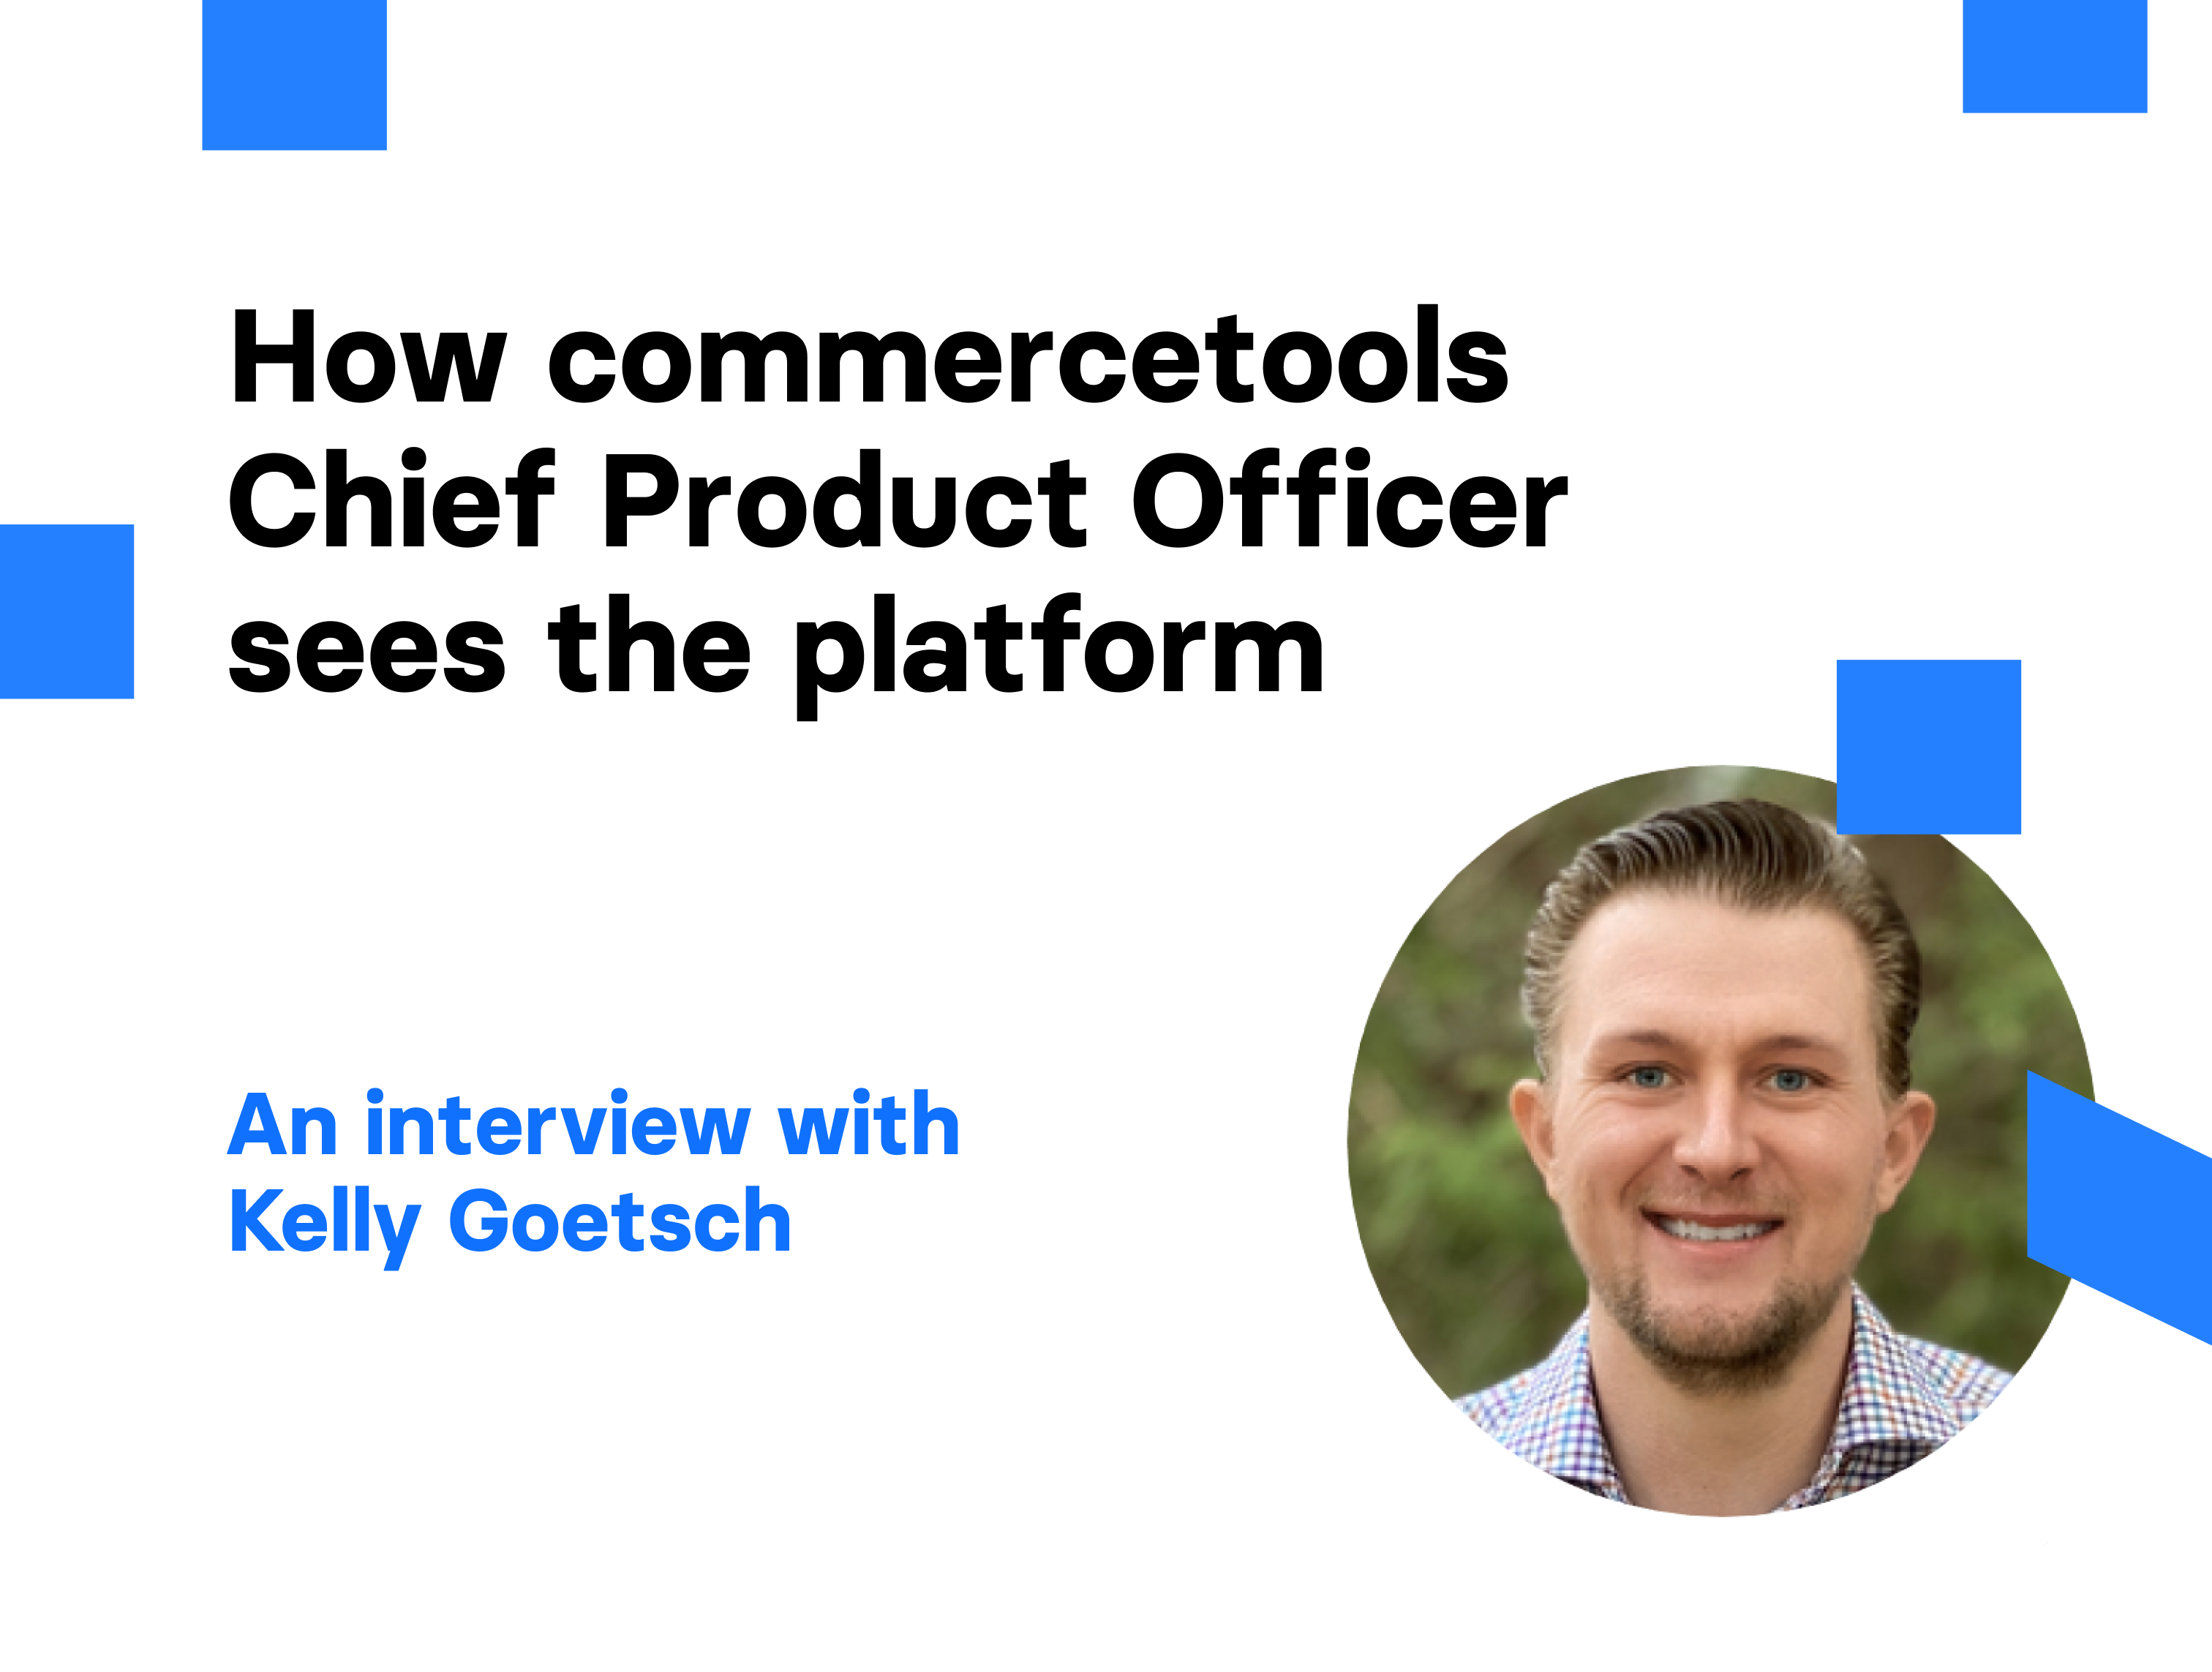 How commercetools Chief Product Officer sees the platform | Divante